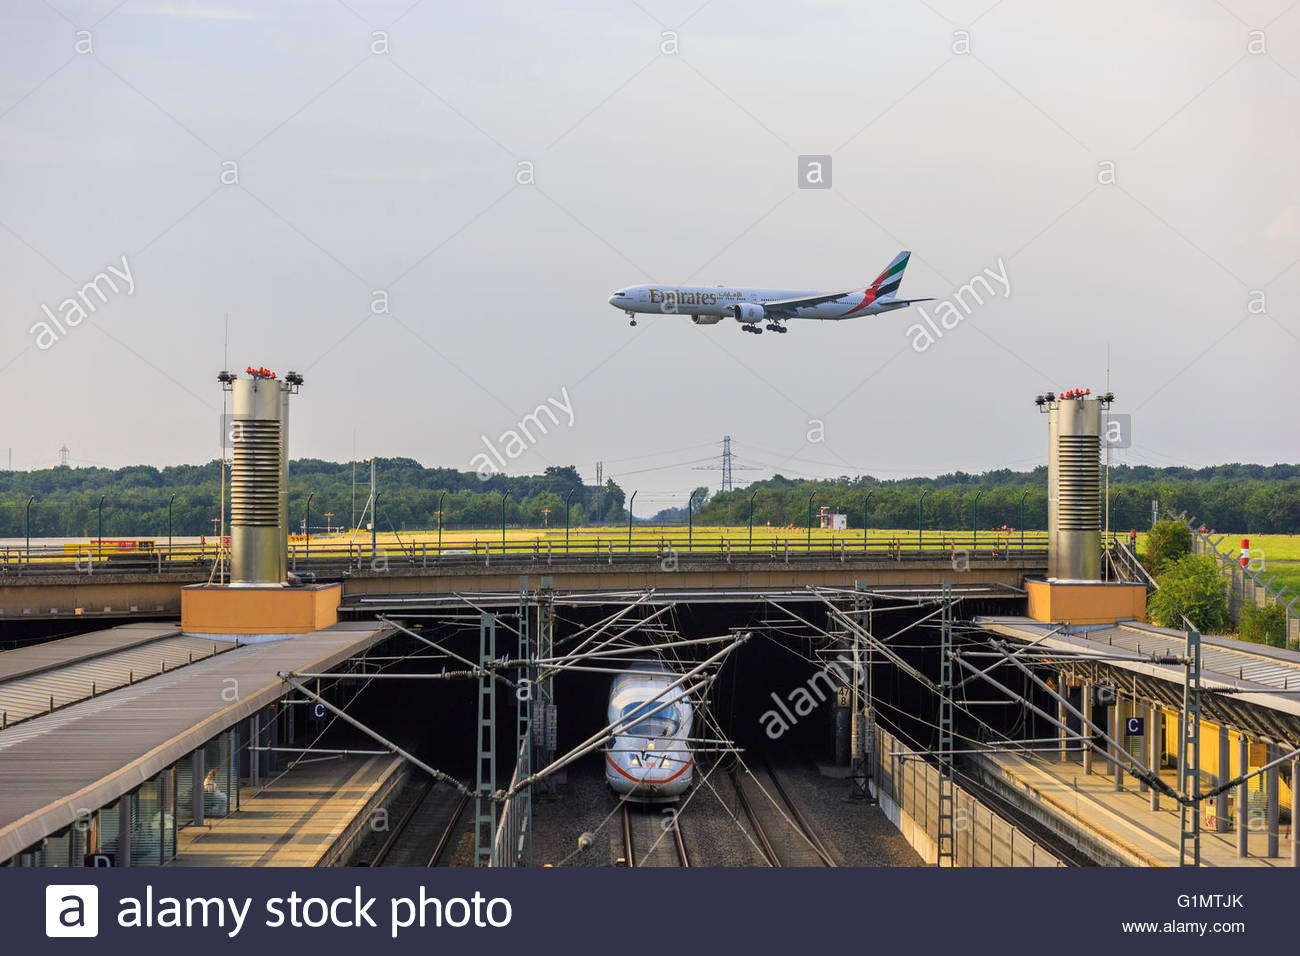 railways airports and harbour engineering Professional ethics in engineering professional ethics in engineering by   railway airports and harbour engineering railway airports and harbour.